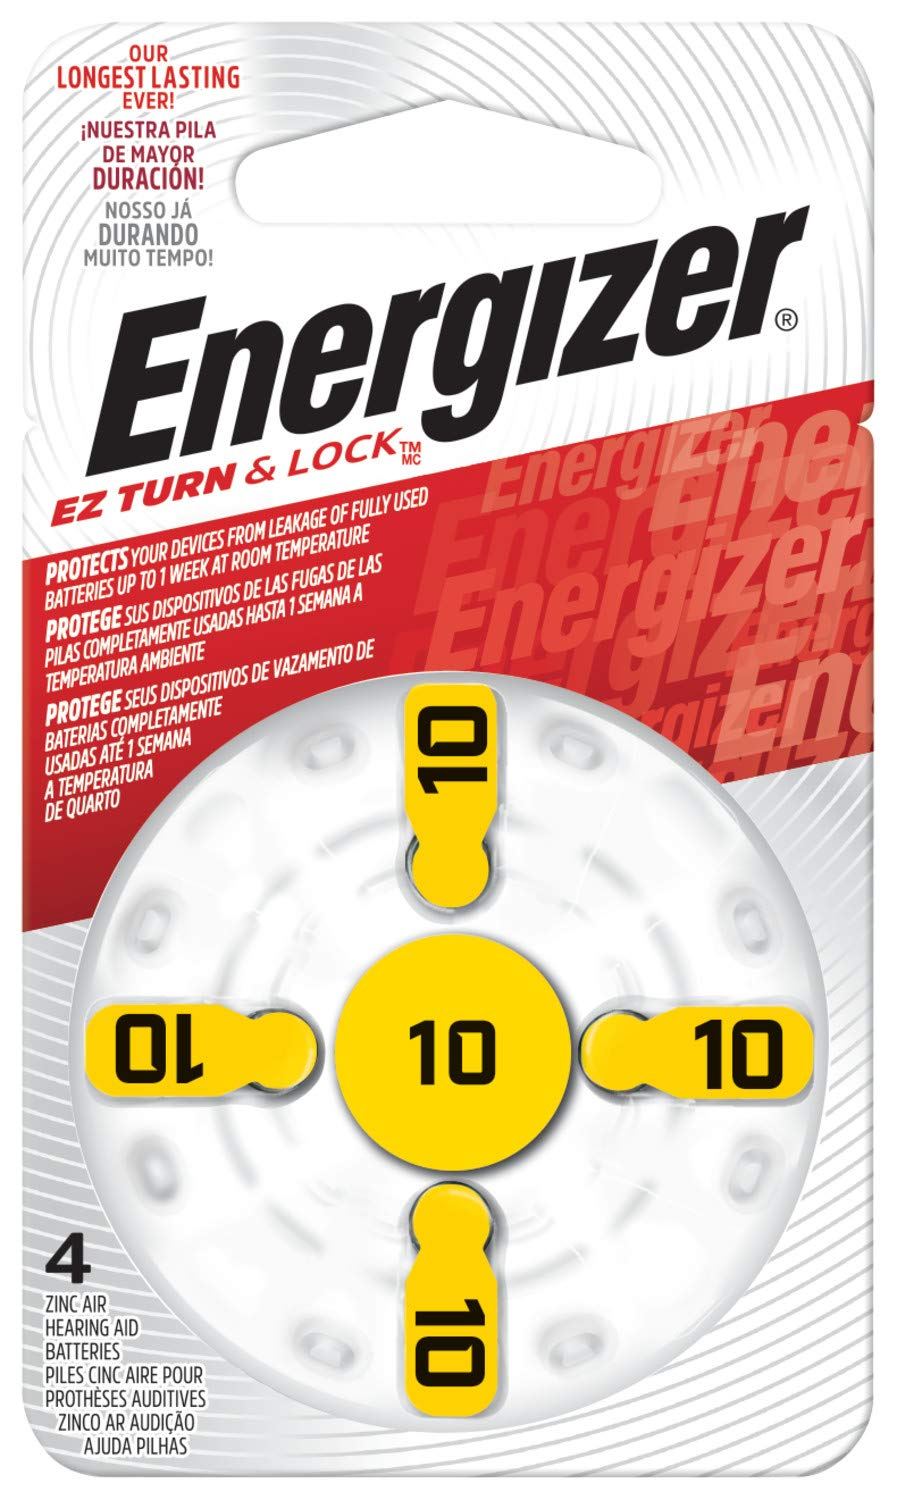 Energizer EZ Turn & Lock 10 Hearing Aid Battery, 96-Count by Energizer